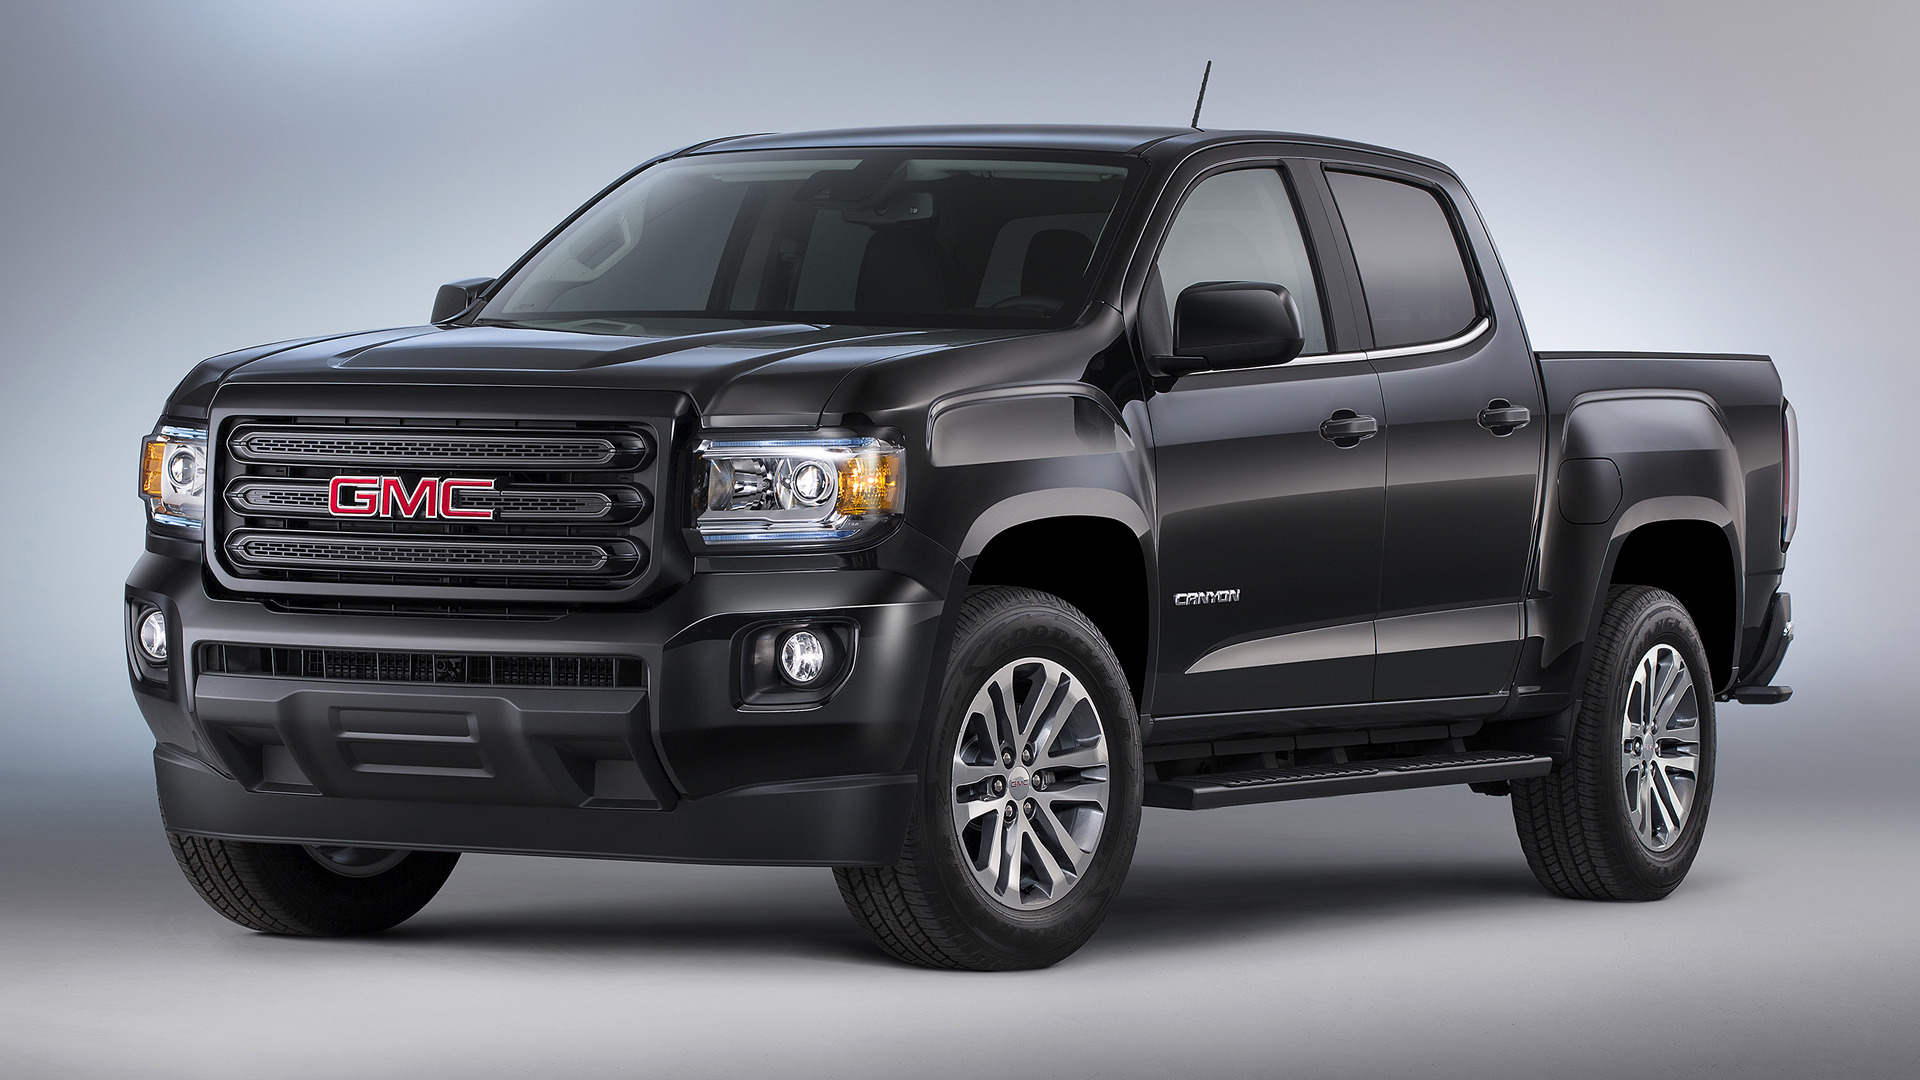 Lifted Crew Cab Texas Truck together with Gmc Canyon Crew Cab likewise 2007 Tahoe Airbag Code B0083 Front Left Impact Sensor 65544 together with 181201585435 furthermore Carro. on 2007 gmc sierra all terrain